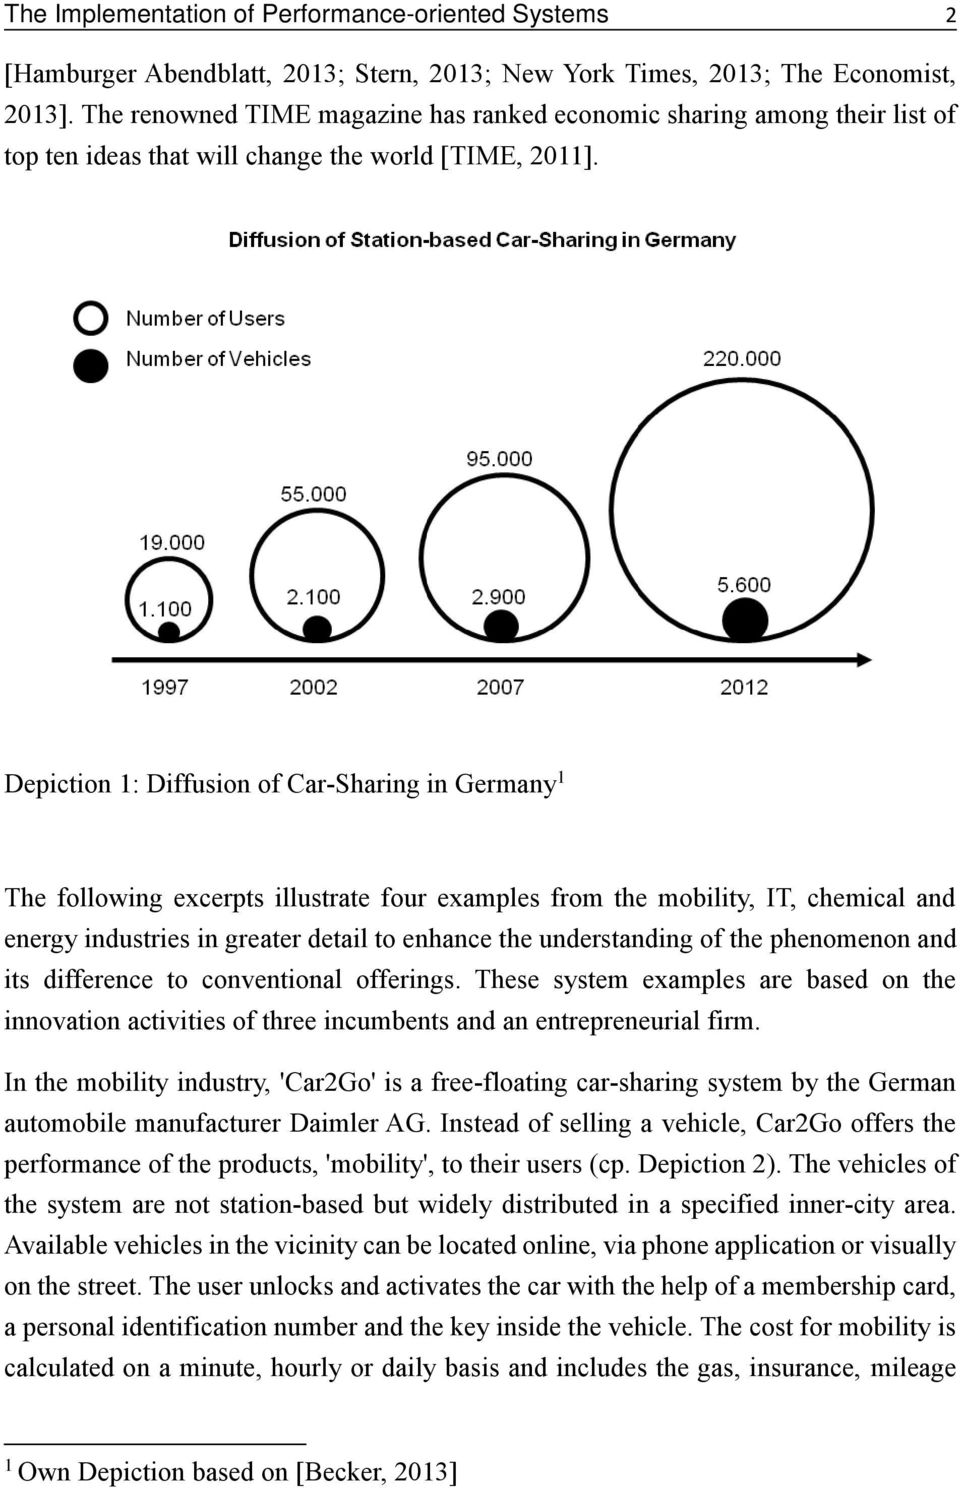 Depiction 1: Diffusion of Car-Sharing in Germany 1 The following excerpts illustrate four examples from the mobility, IT, chemical and energy industries in greater detail to enhance the understanding